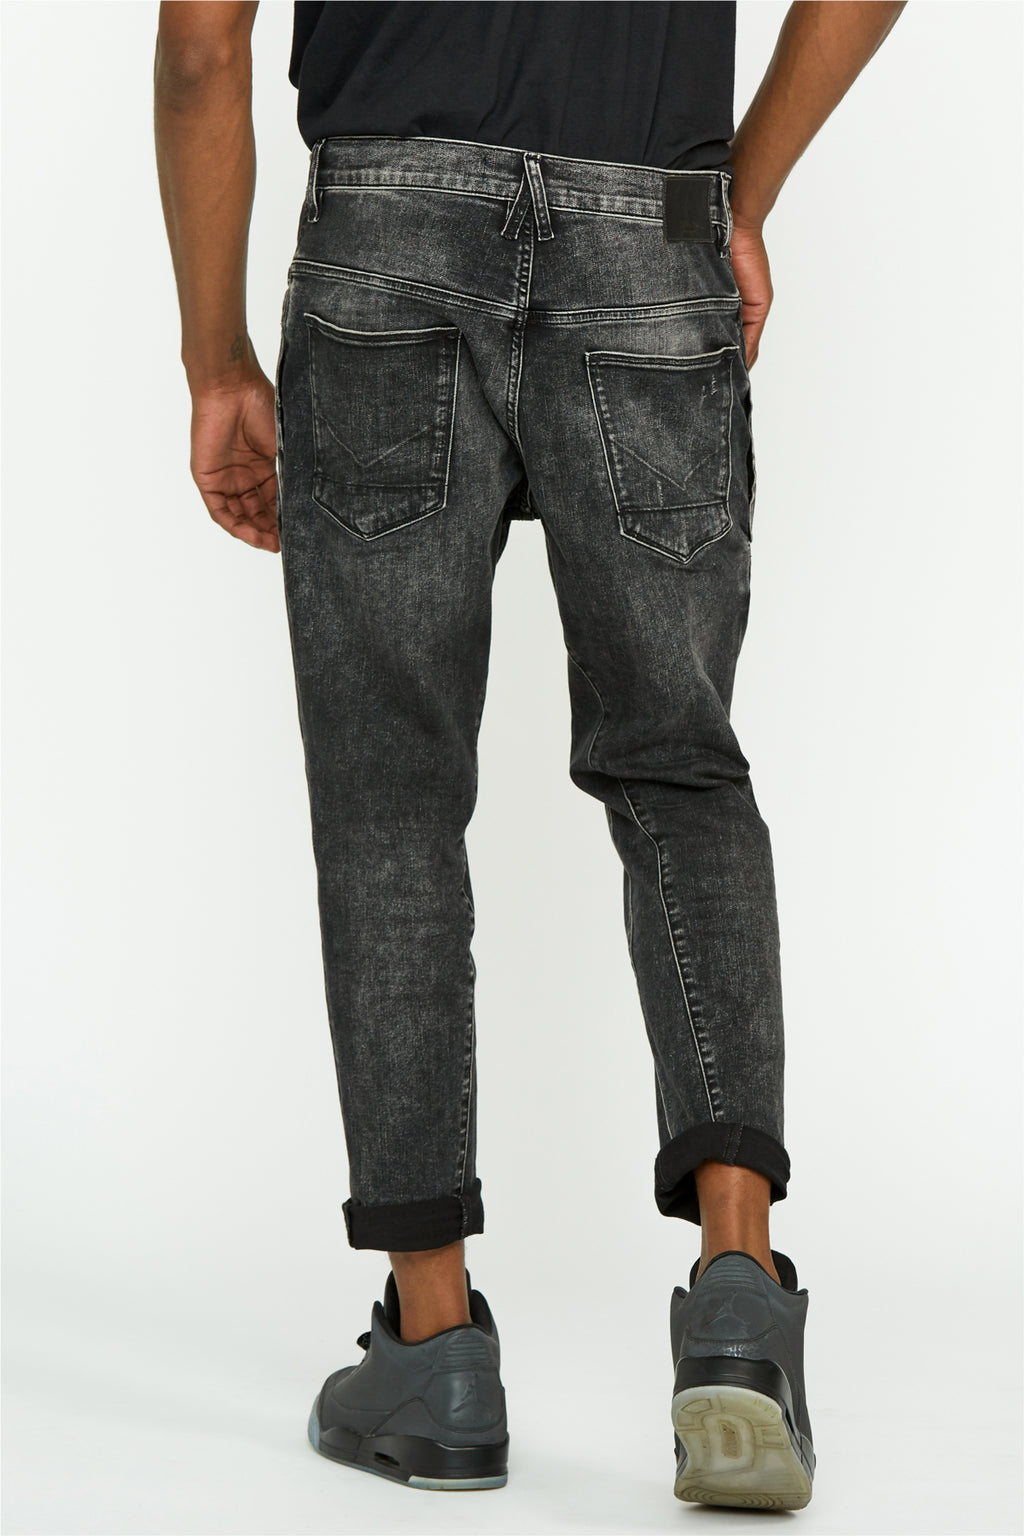 Coen Drop Crotch Slim Leg Jean